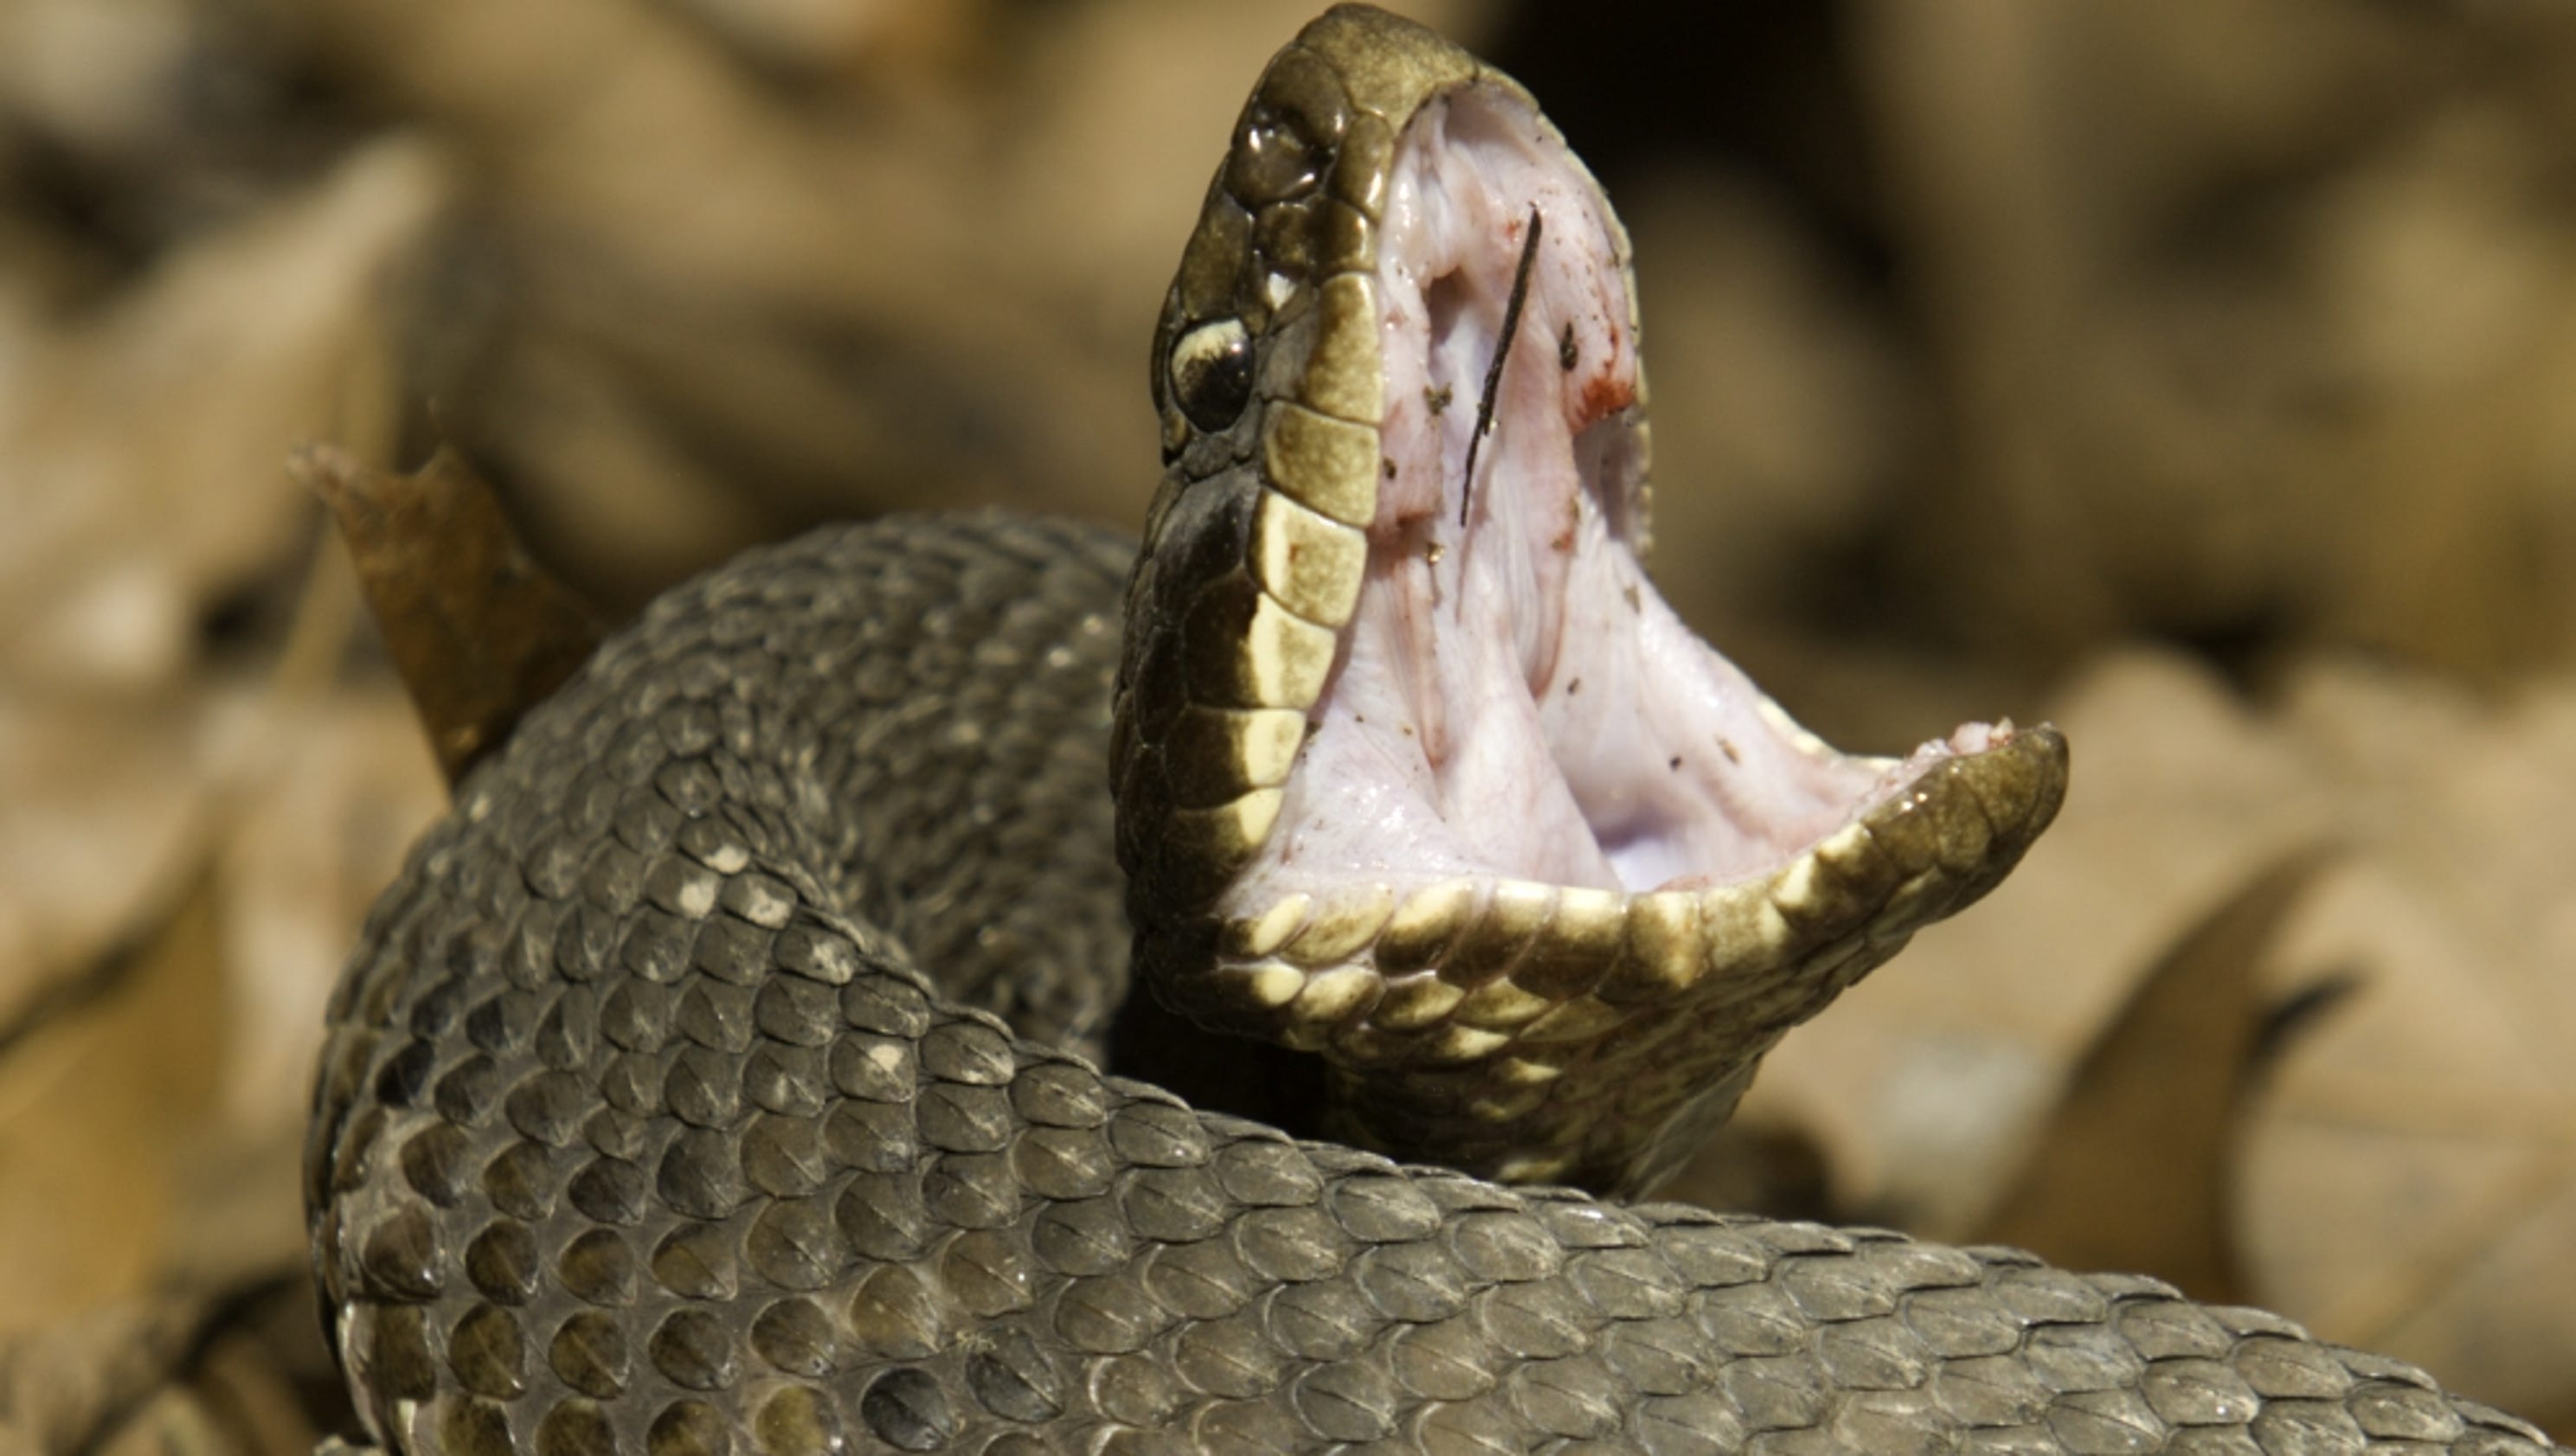 Six-year-old girl survives cottonmouth snake bite